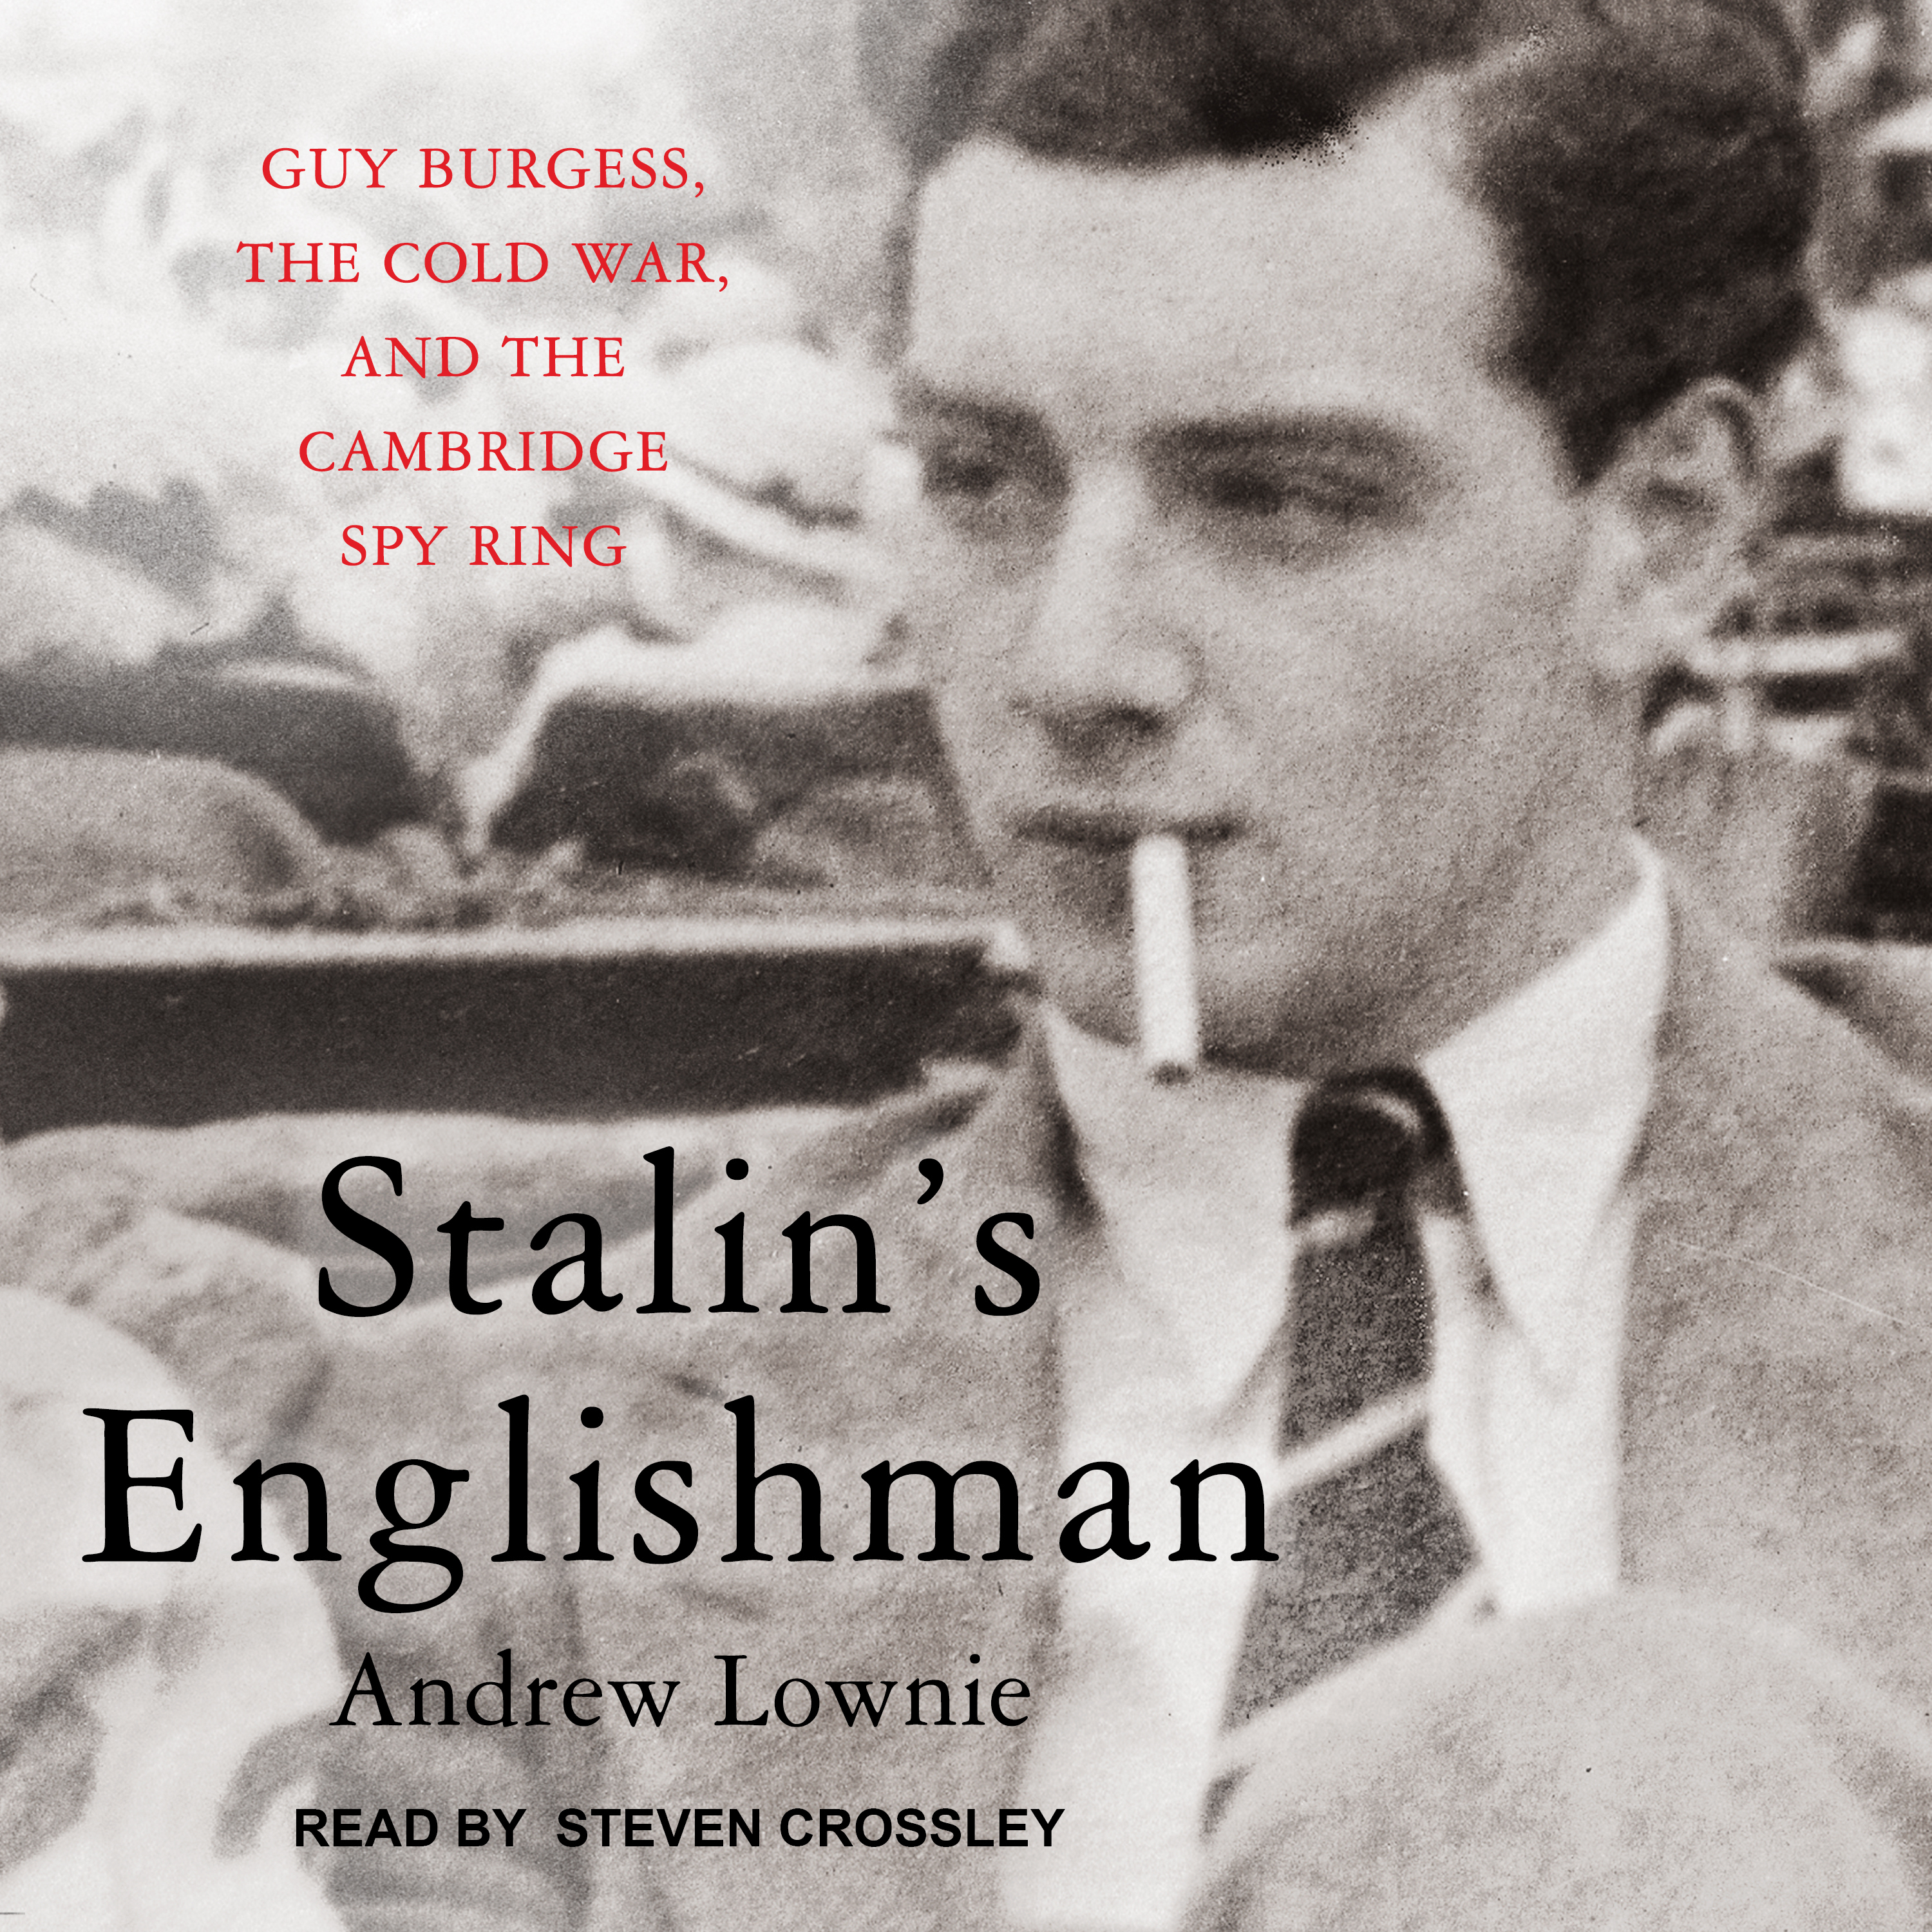 Printable Stalin's Englishman: Guy Burgess, the Cold War, and the Cambridge Spy Ring Audiobook Cover Art